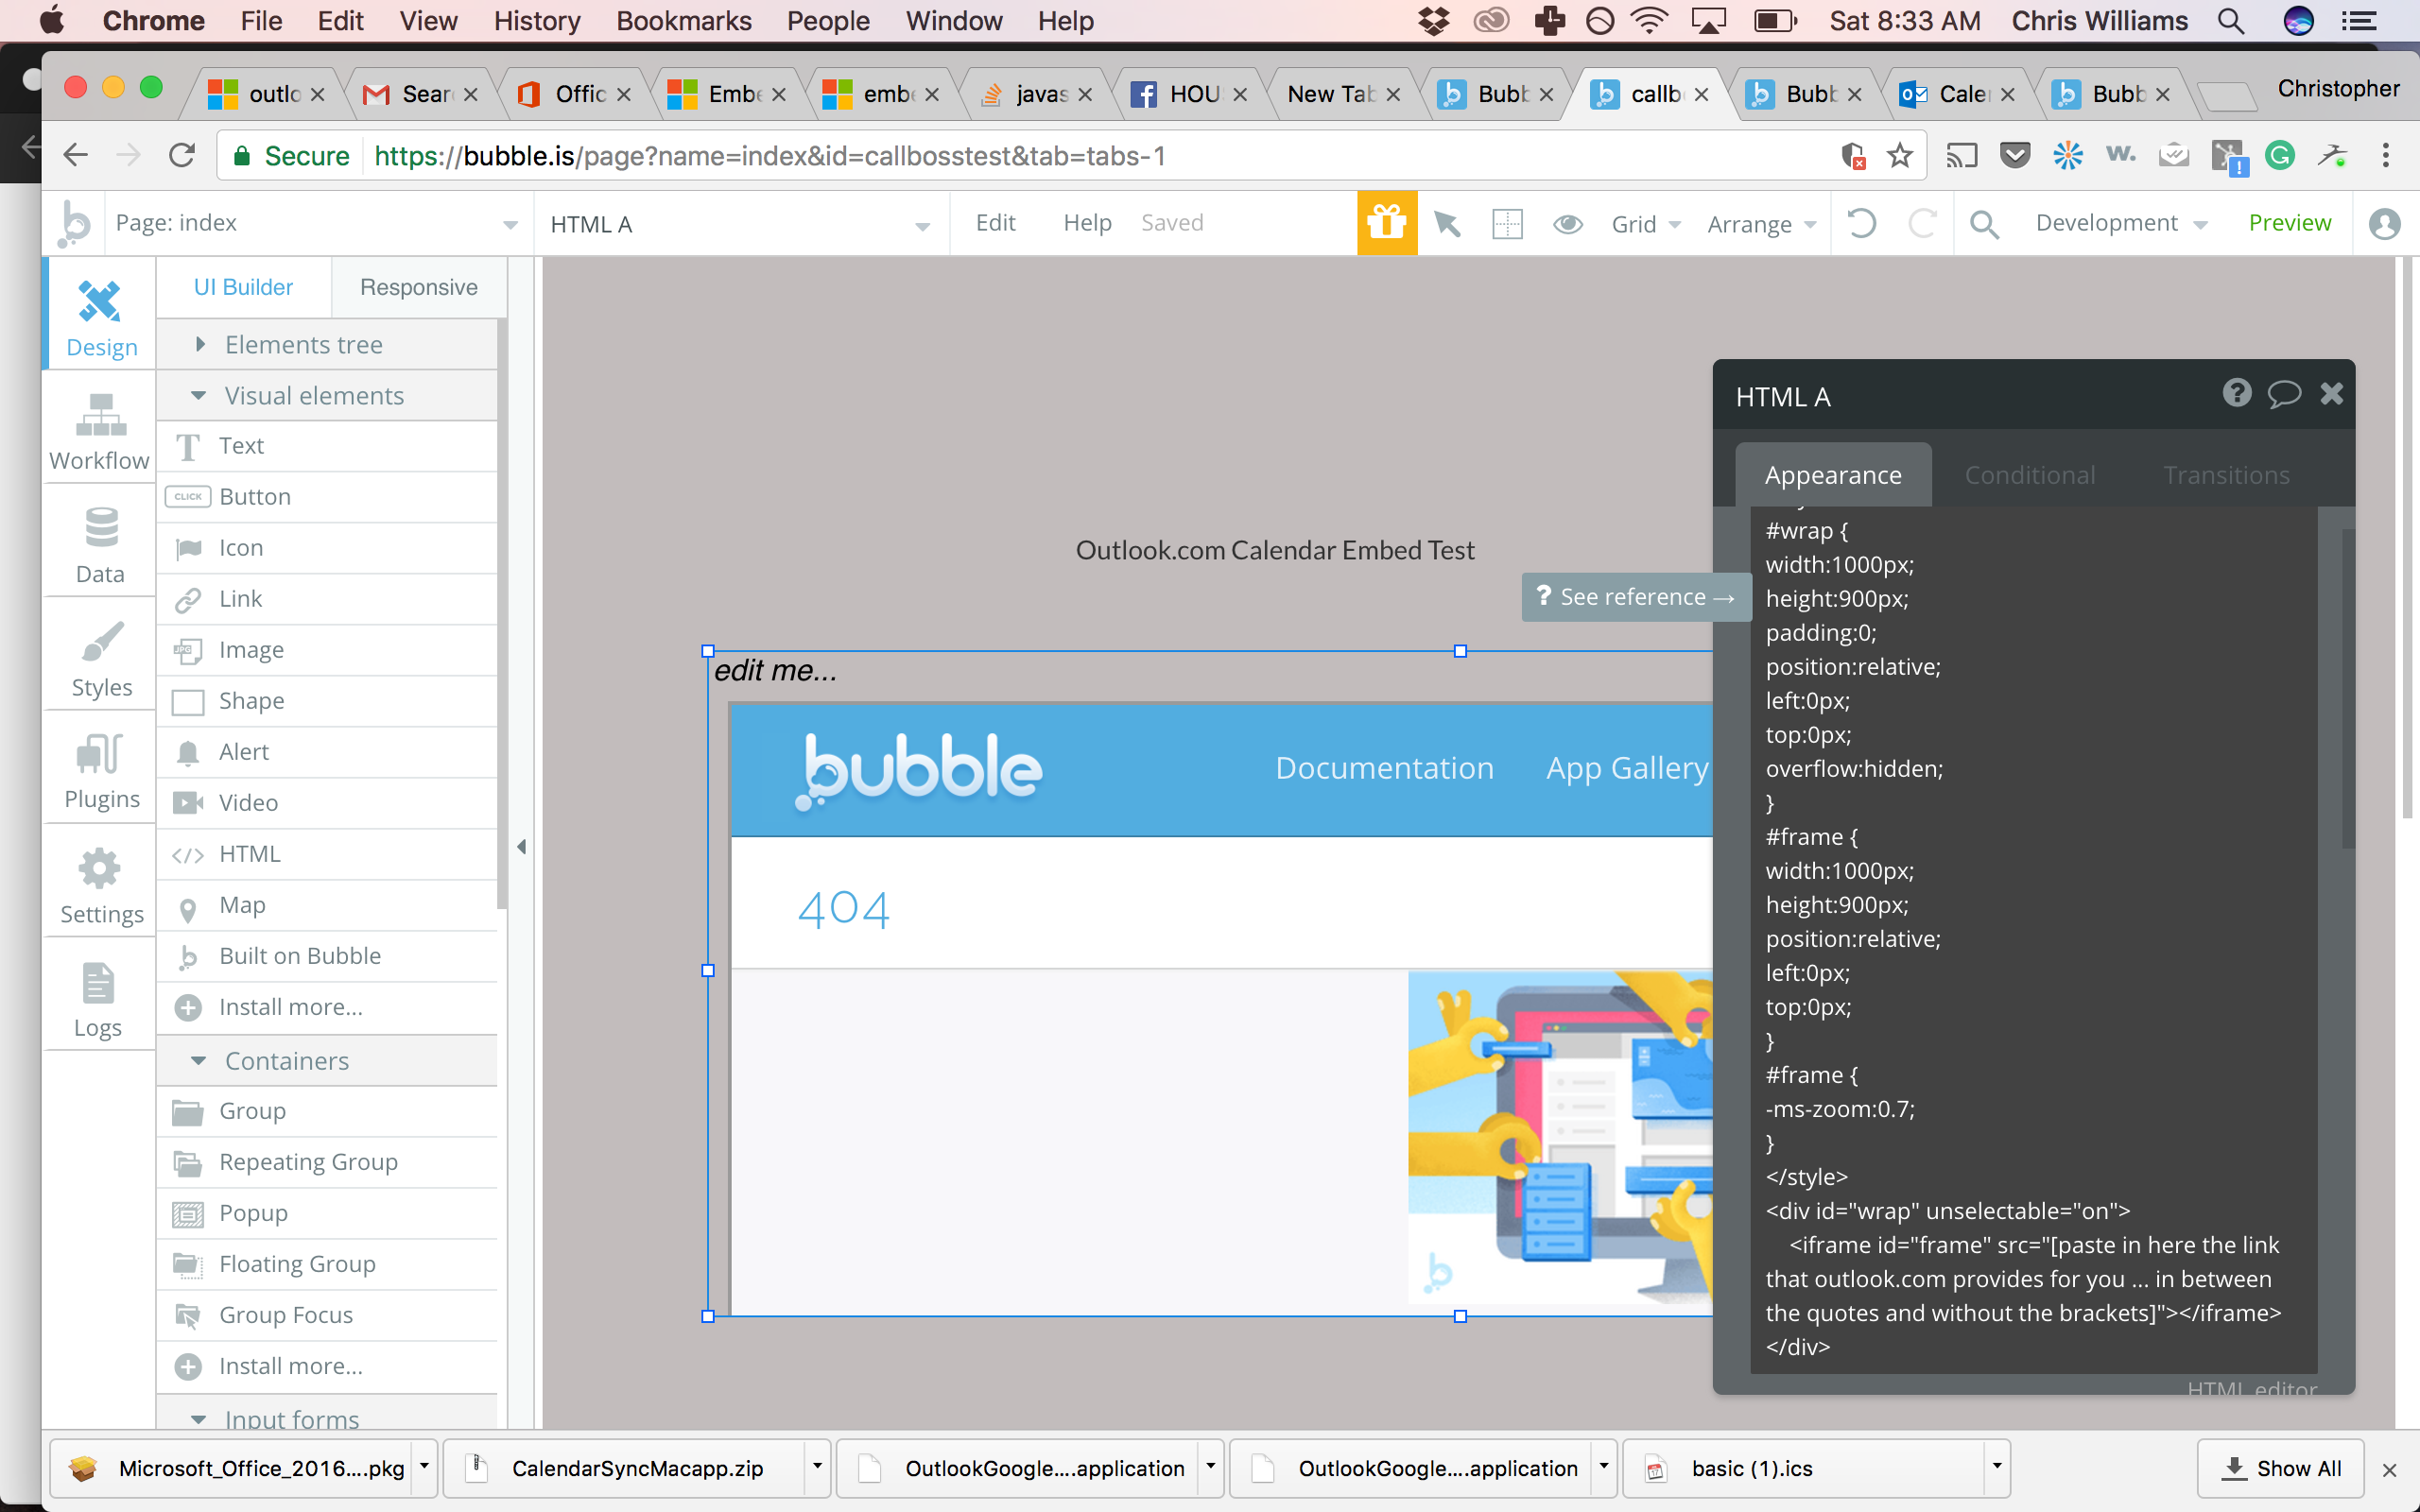 Problem Embedding Outlook Calendar on Bubble with <iframe> - Need